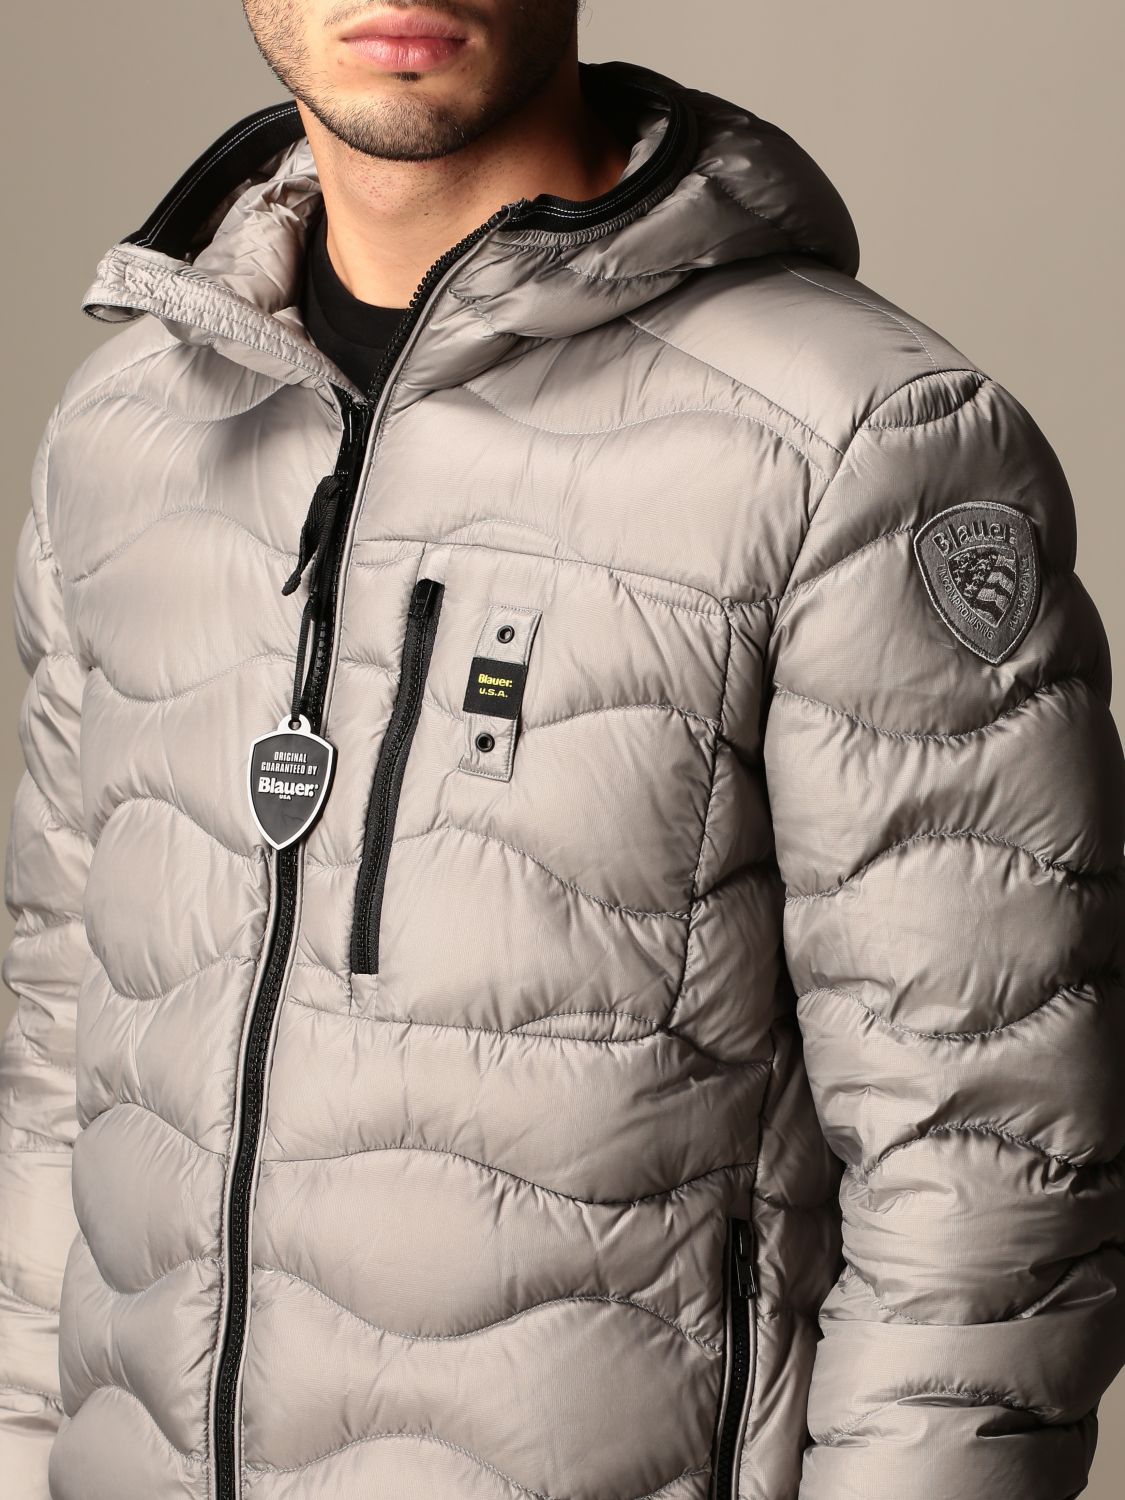 Jacket Blauer: Jacket women Blauer grey 3